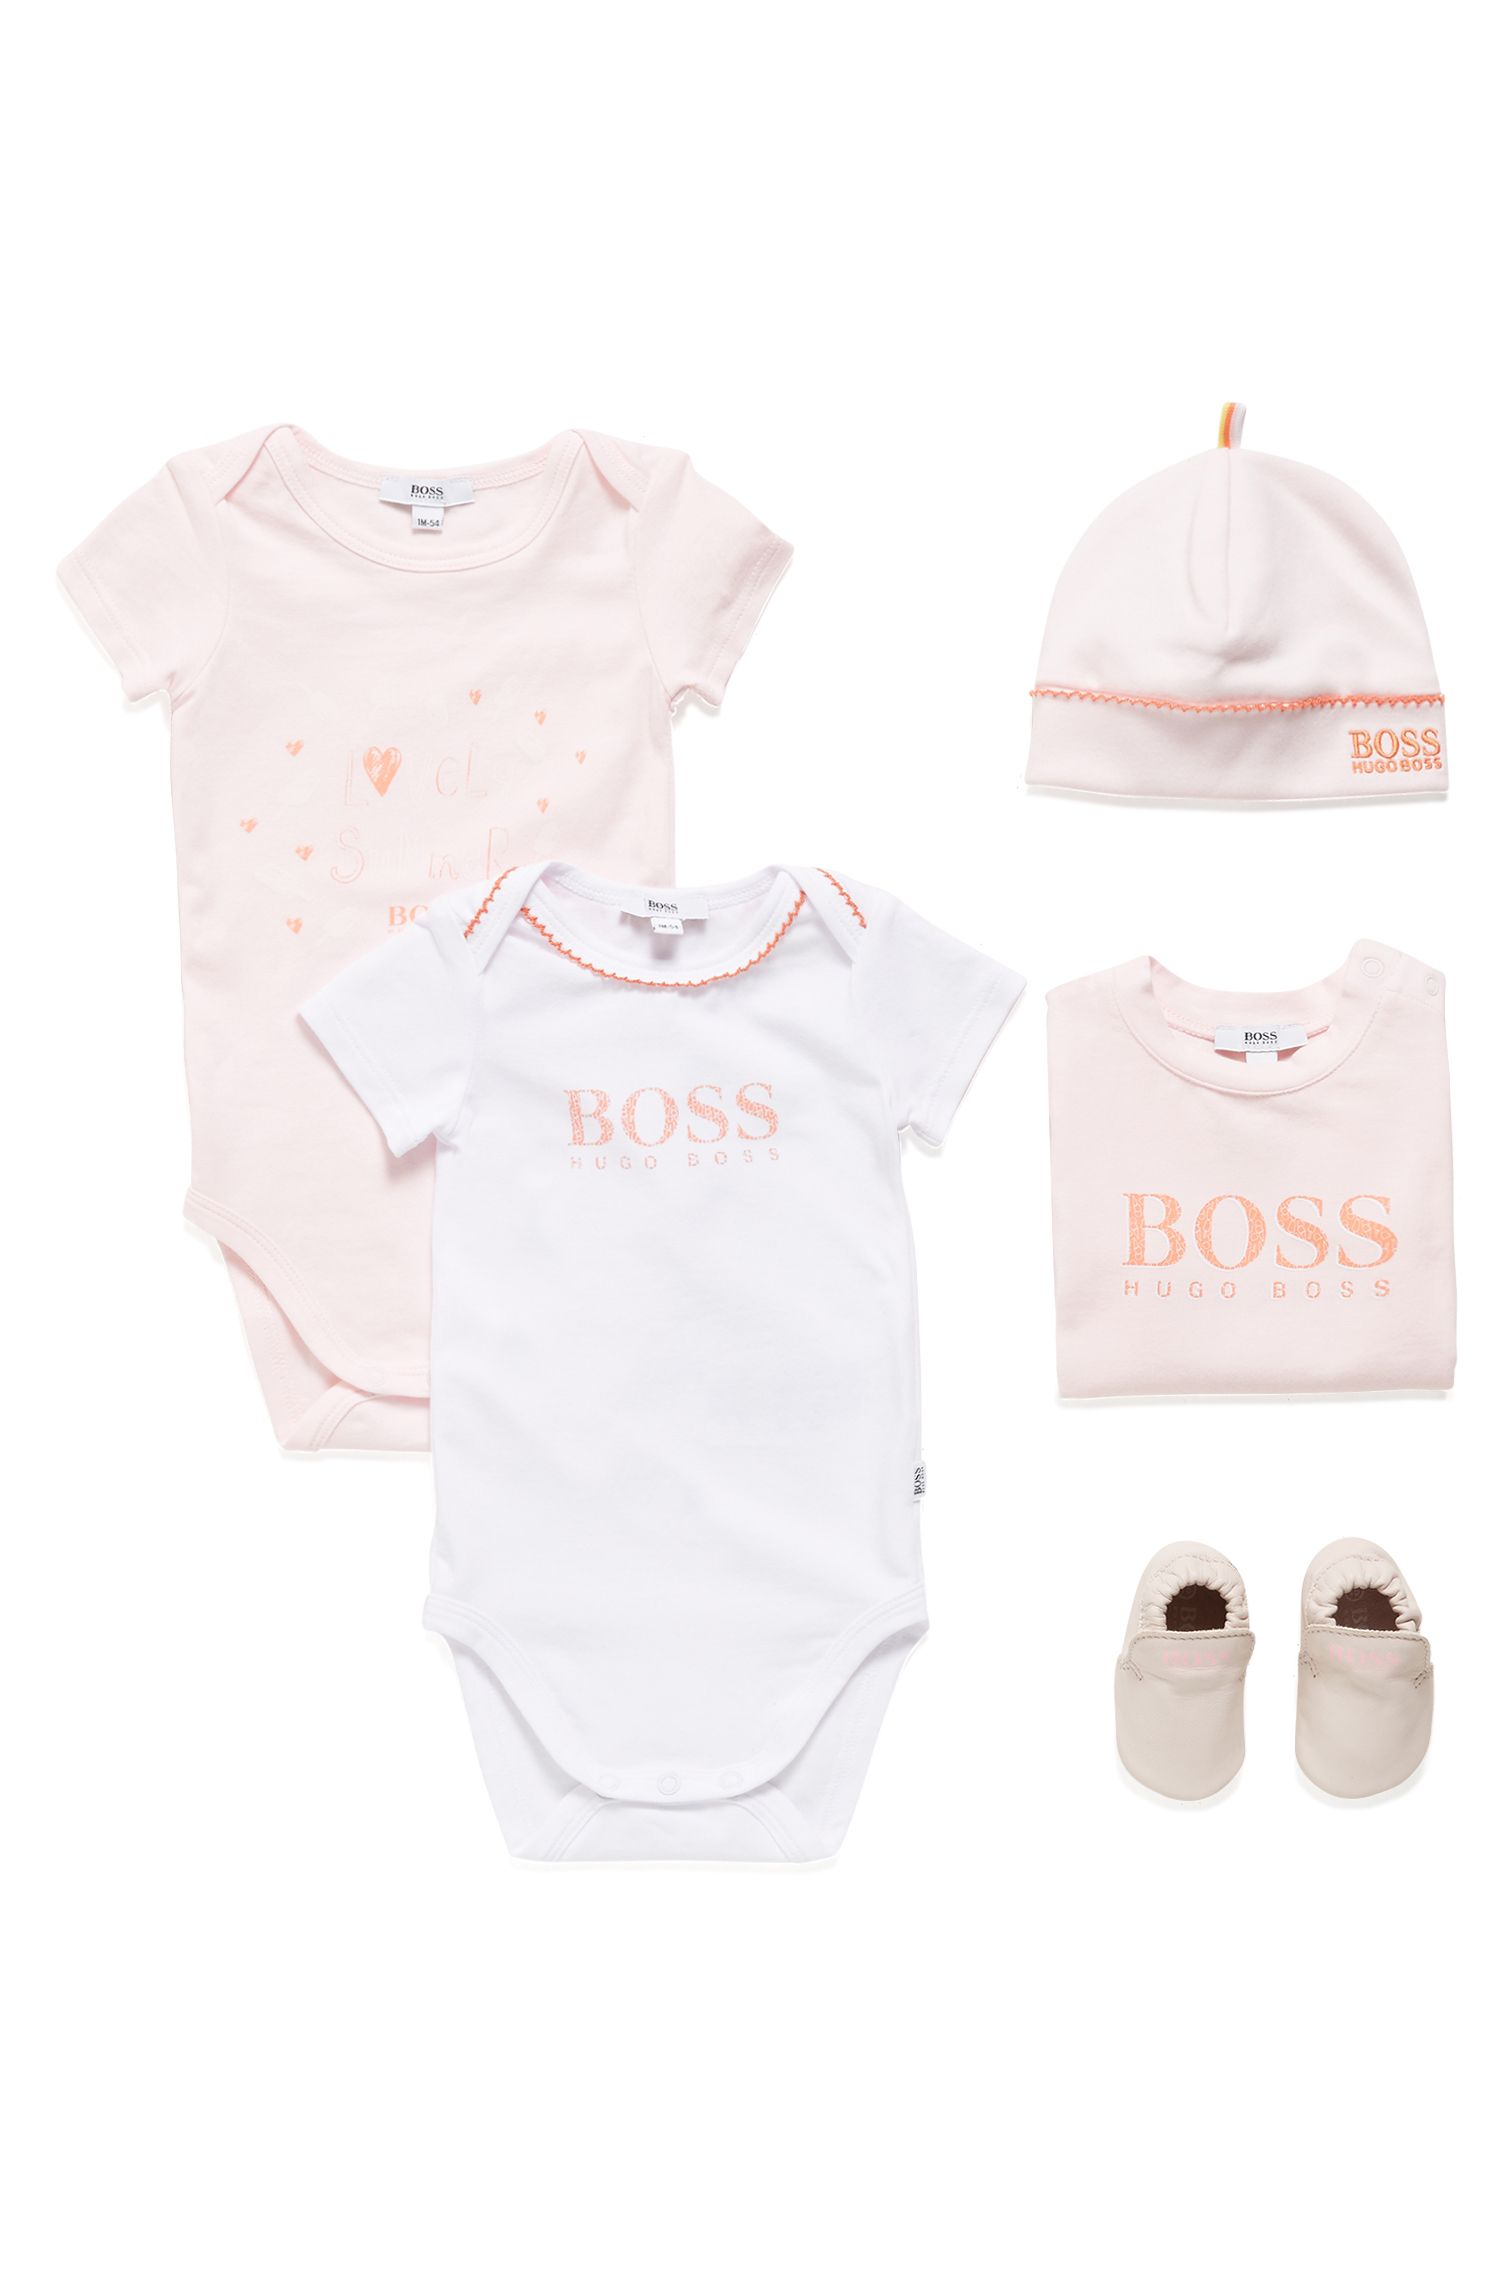 Deux bodies fille en jersey de coton stretch, Fantaisie